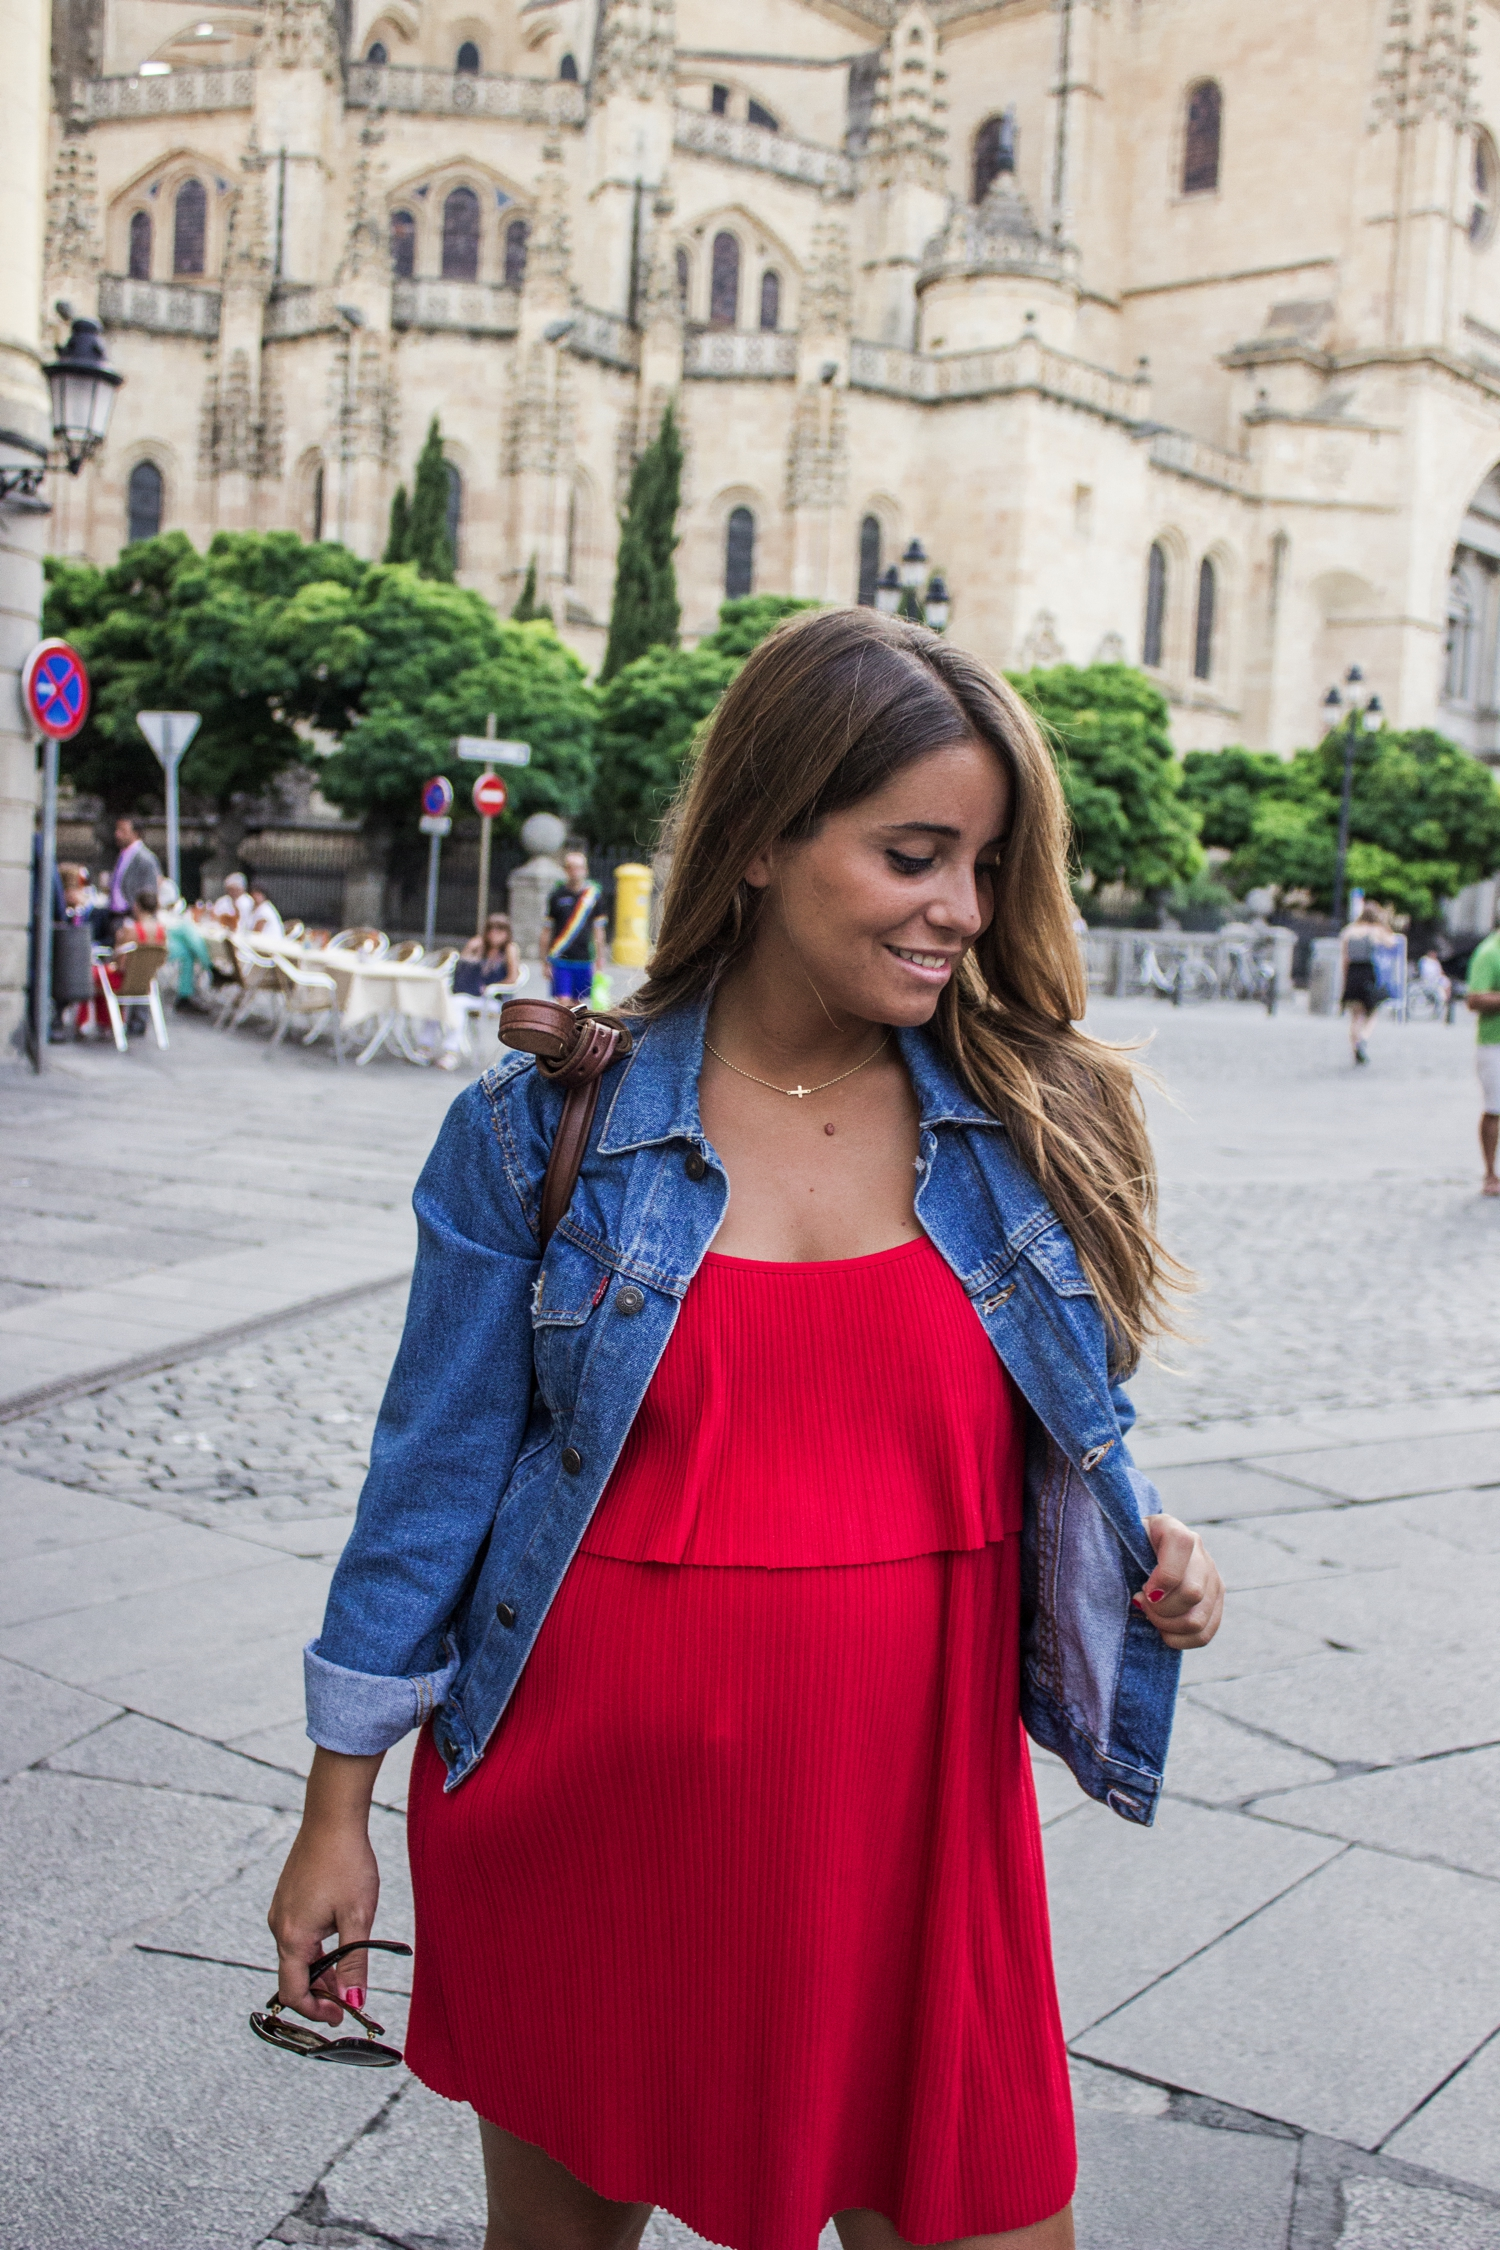 loreto-made-in-style-vestido-rojo-red-dress-segovia-leather-white-vans-denim-jacket-3